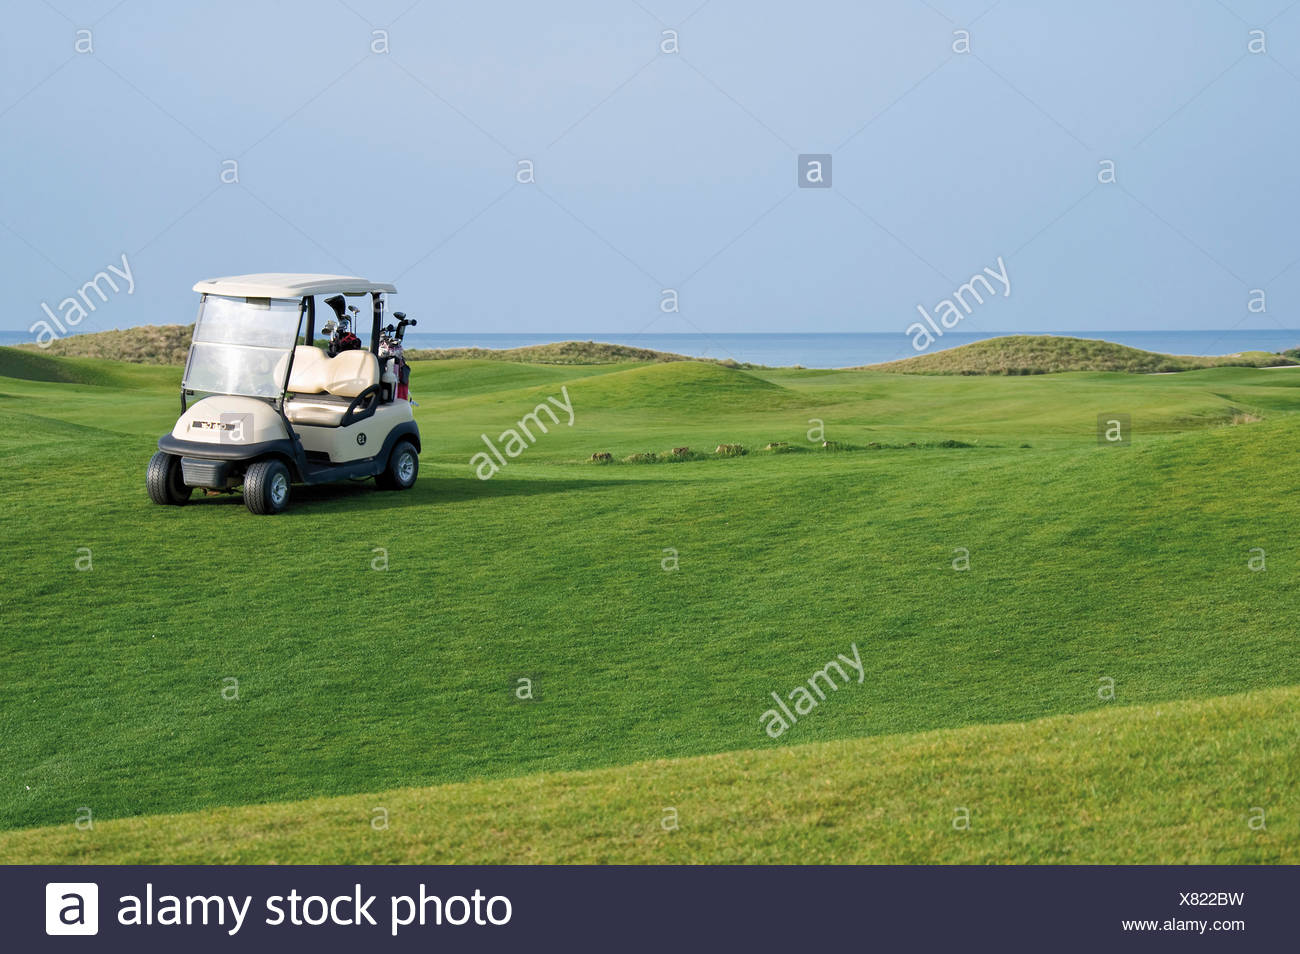 Turkey, Antalya, Golf cart on meadow at golf course - Stock Image